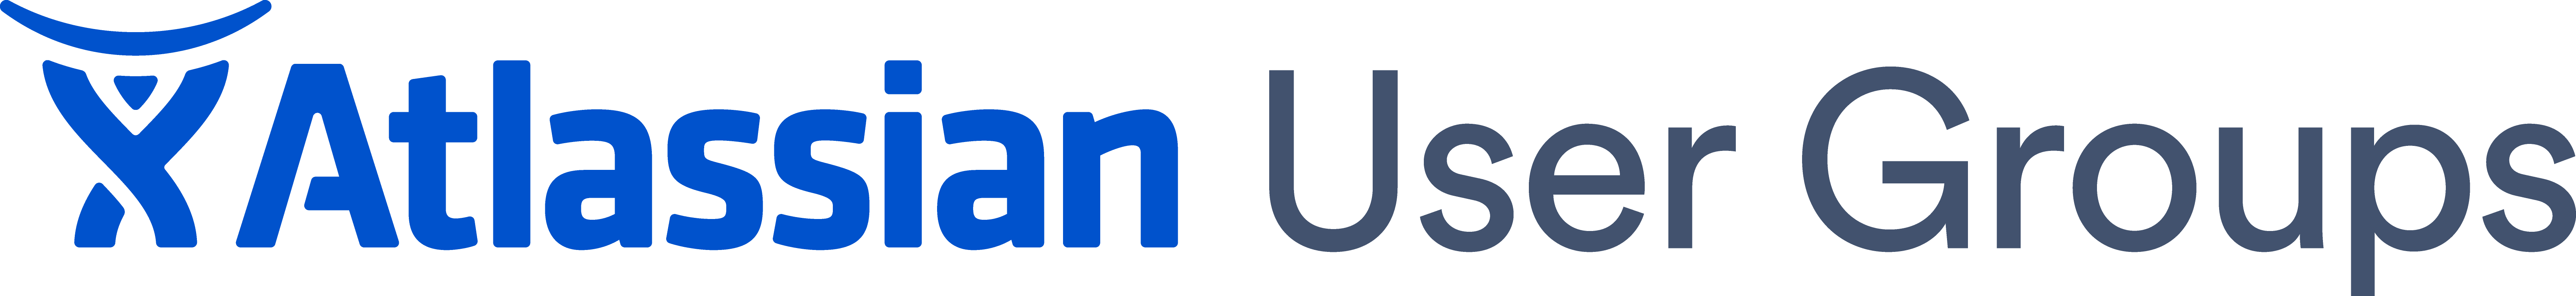 Atlassian User Groups